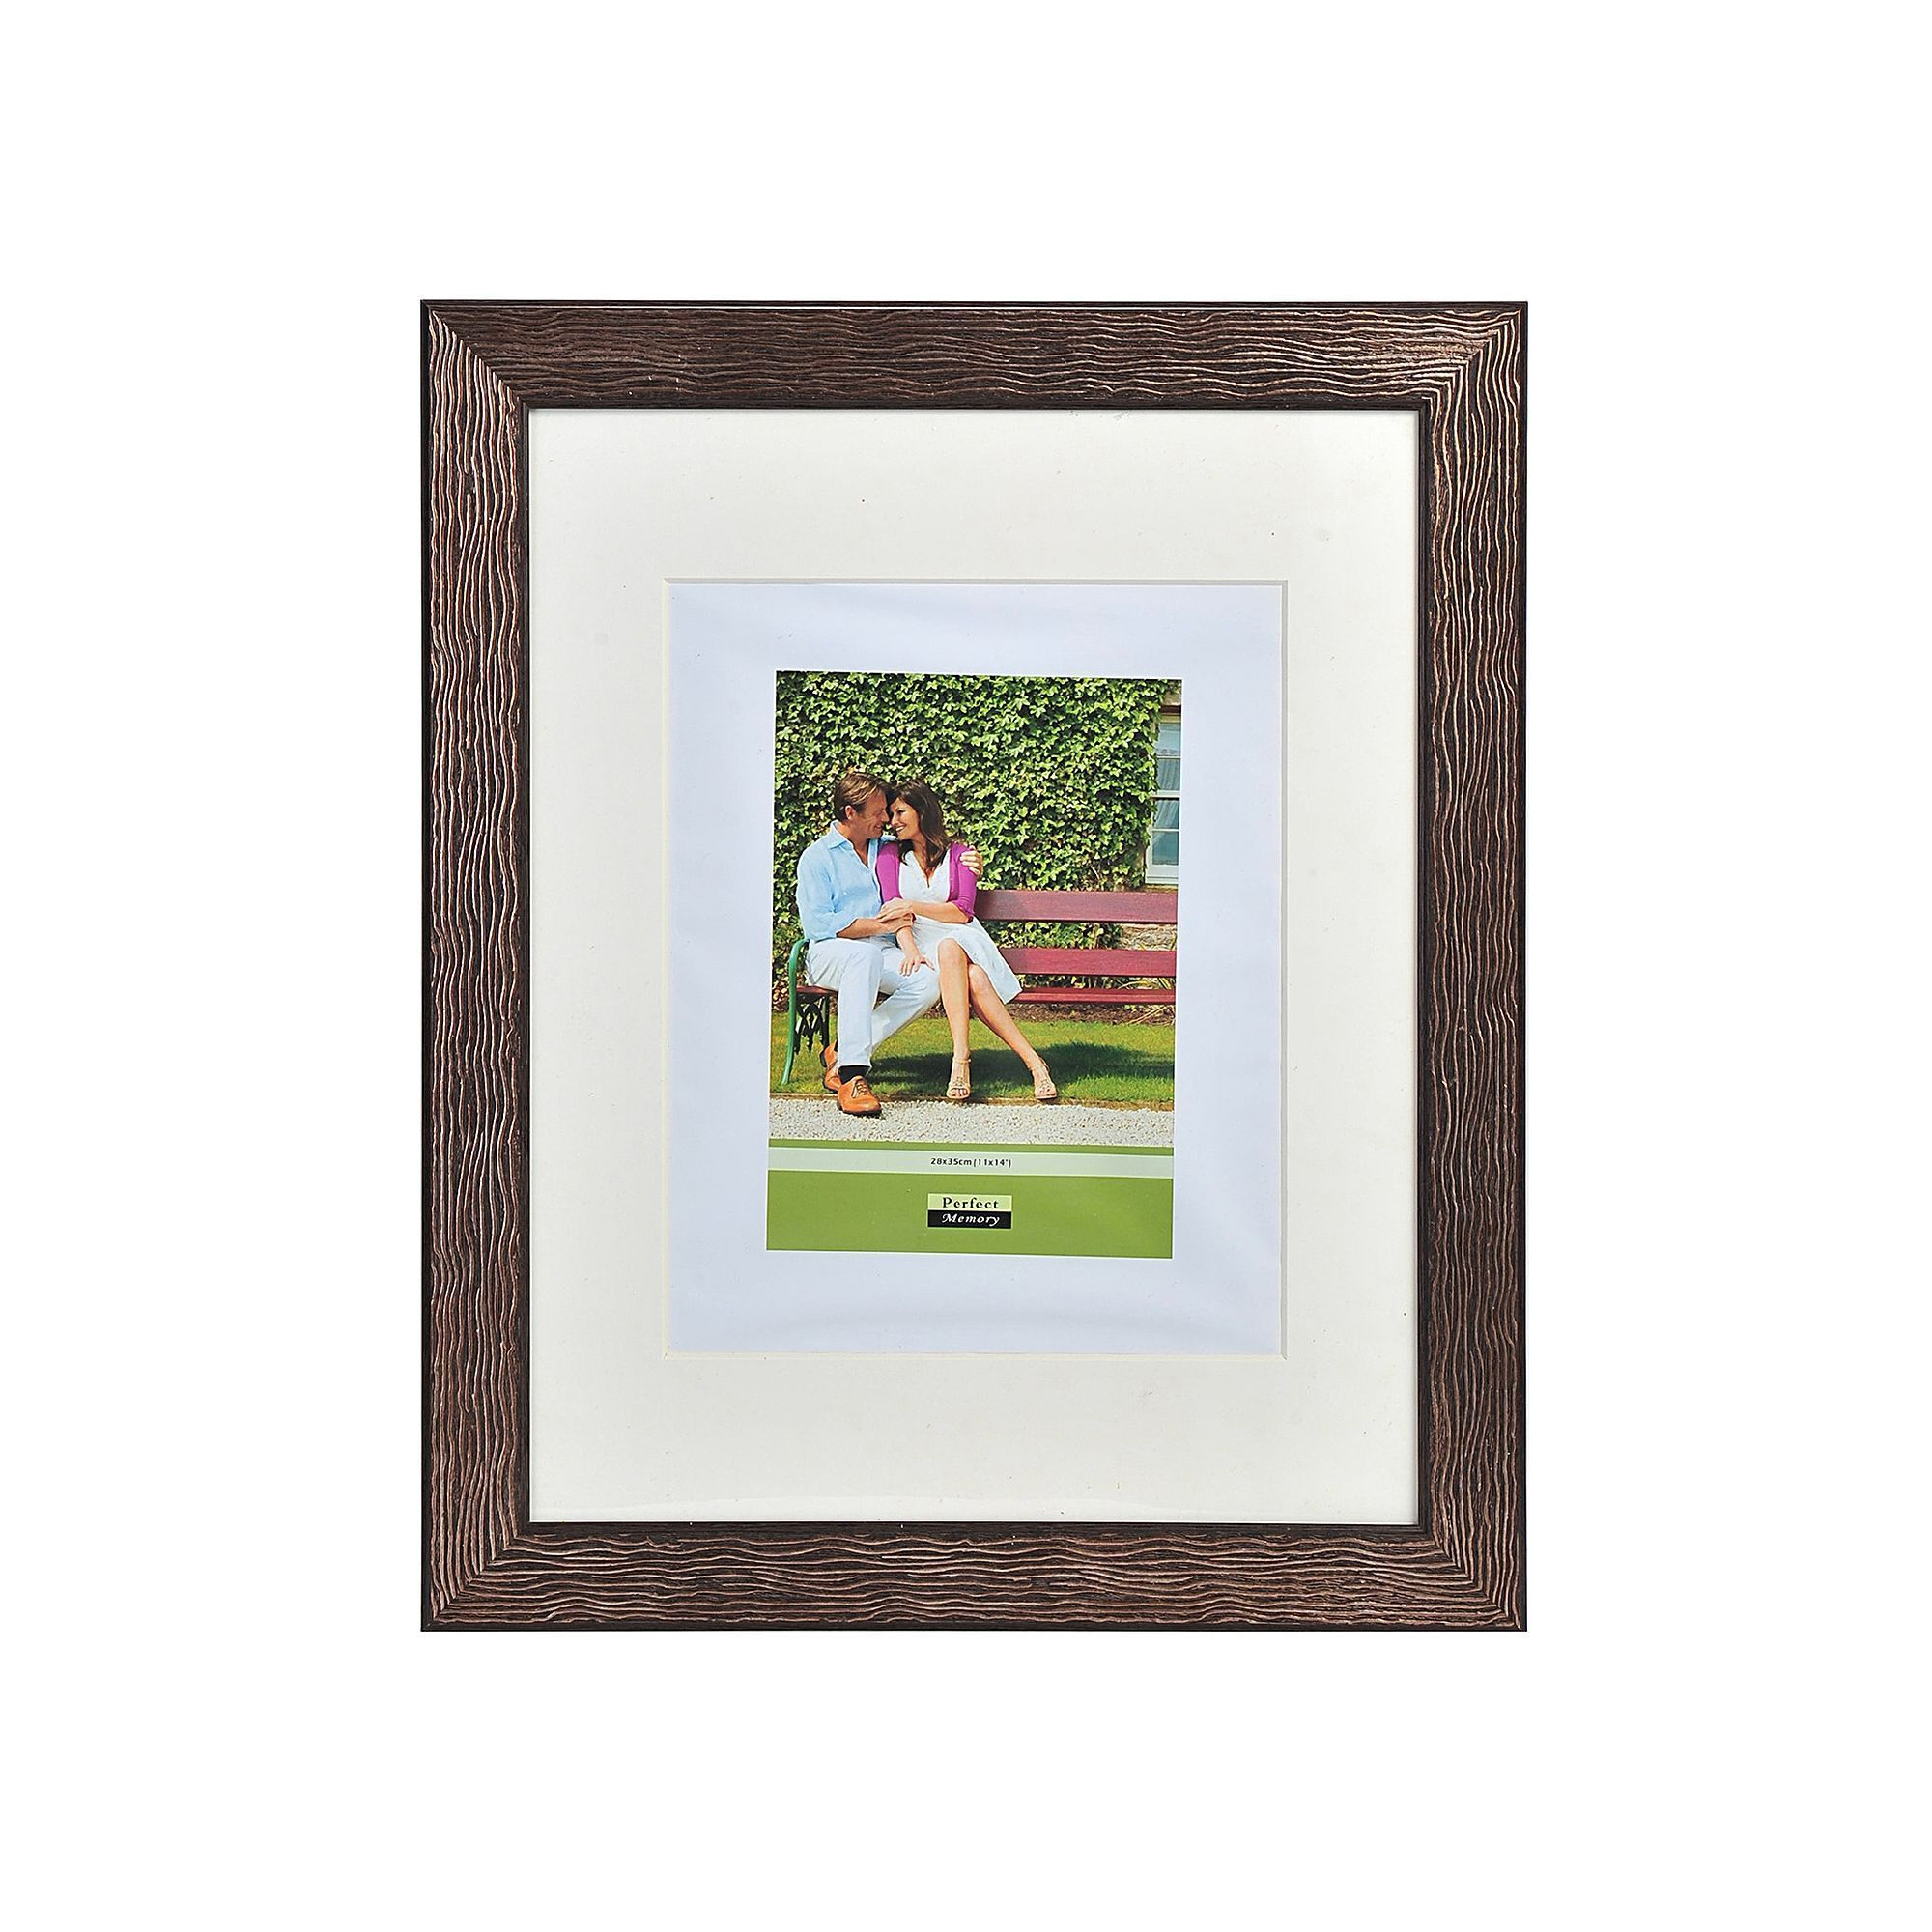 Melannco 16\'\' x 20\'\' / 11\'\' x 14\'\' Portrait Frame, Brown | Products